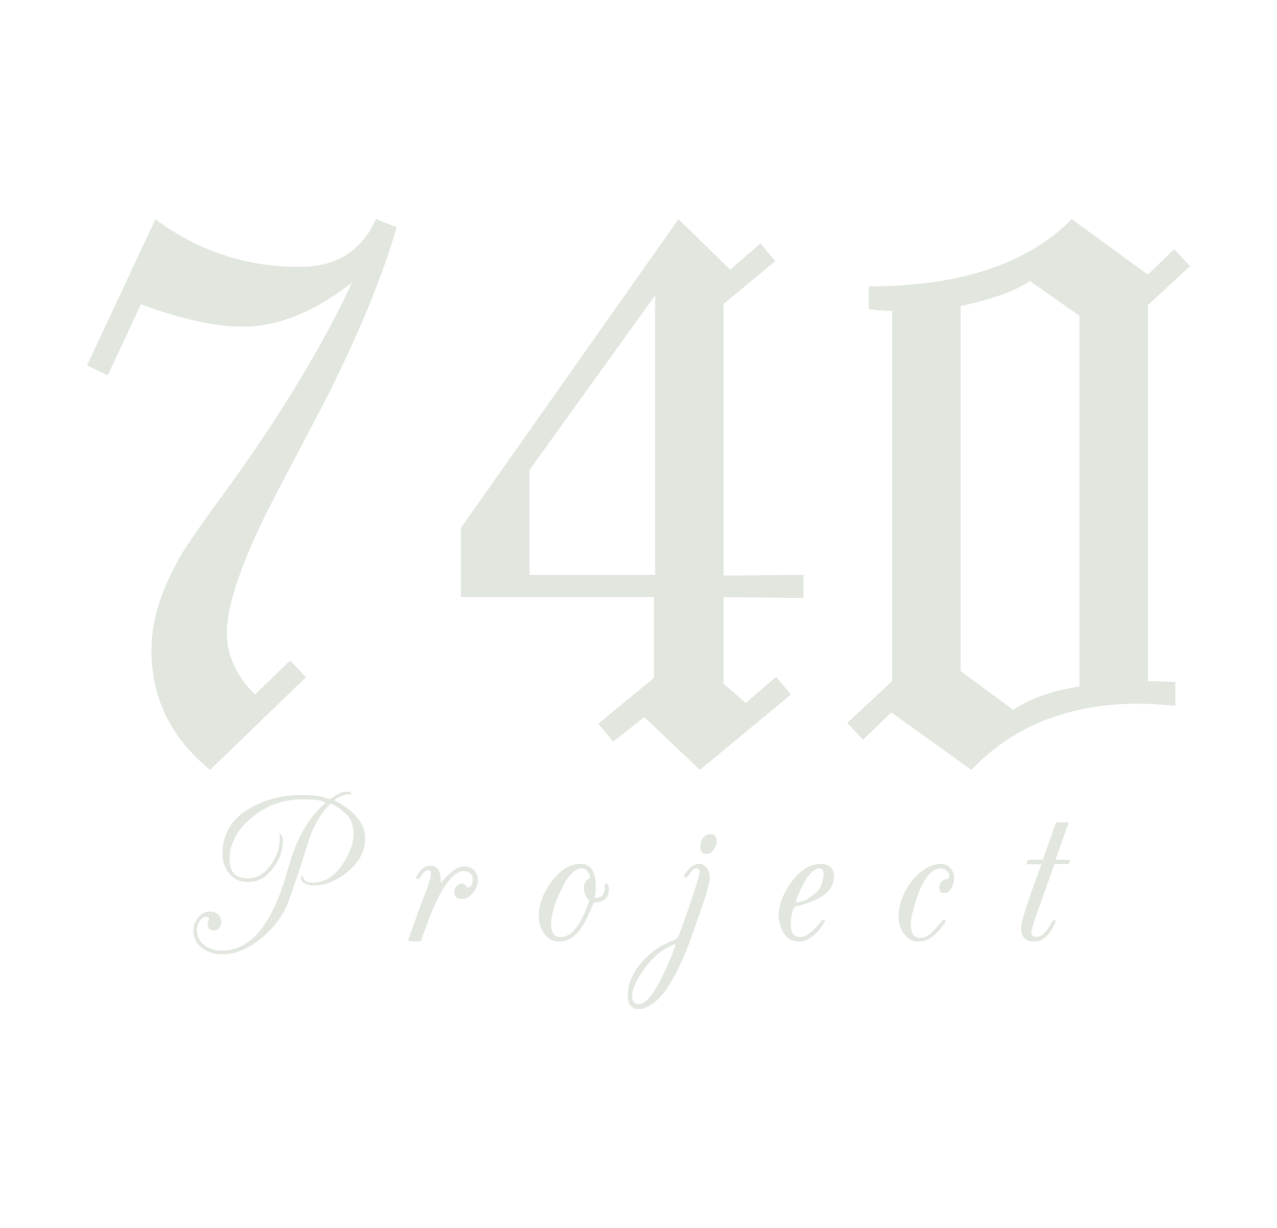 740 PROJECT